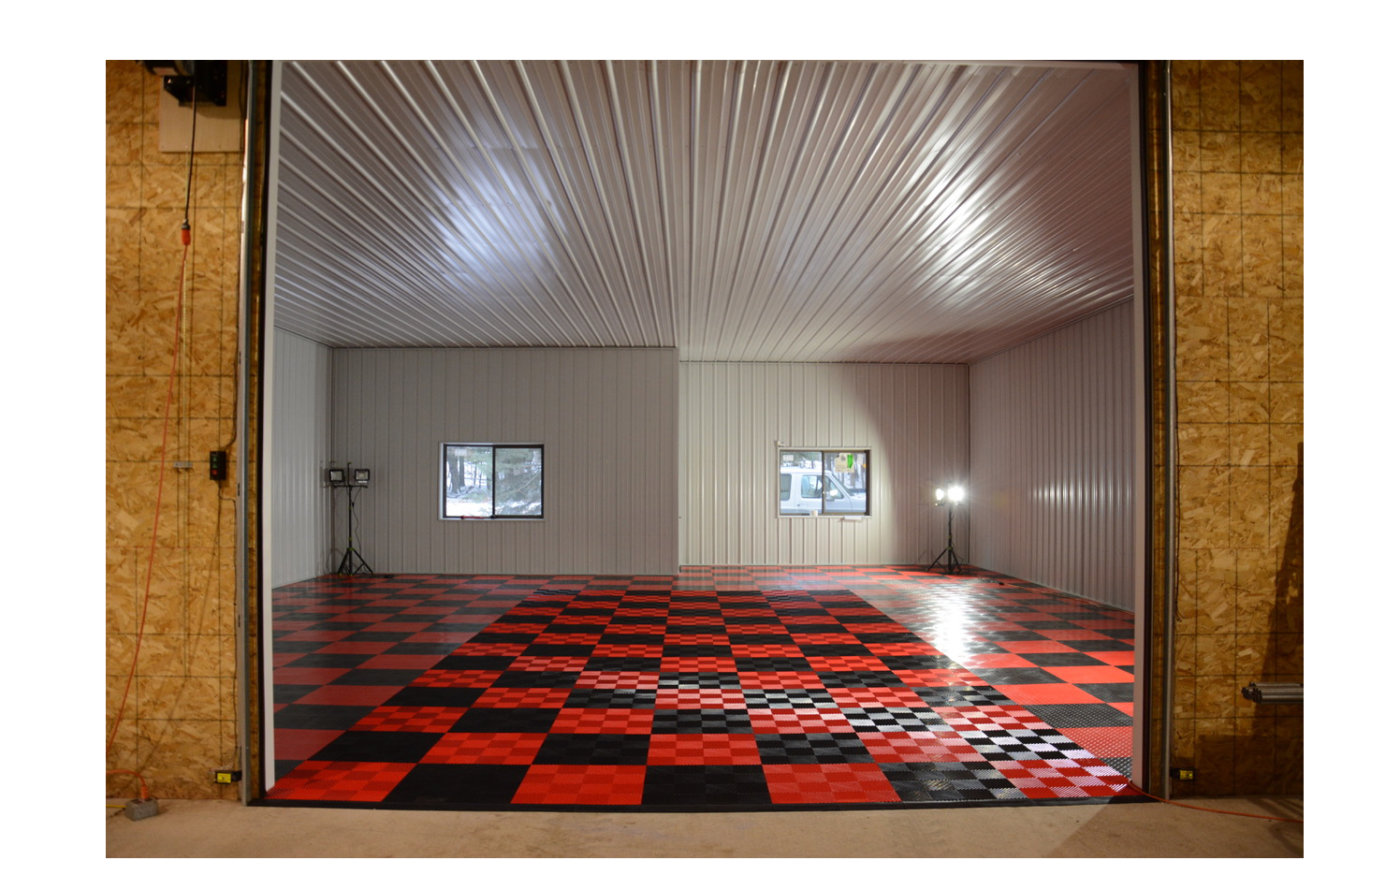 Racedeck Modular Garage Flooring Tiles Reincarnation Magazine